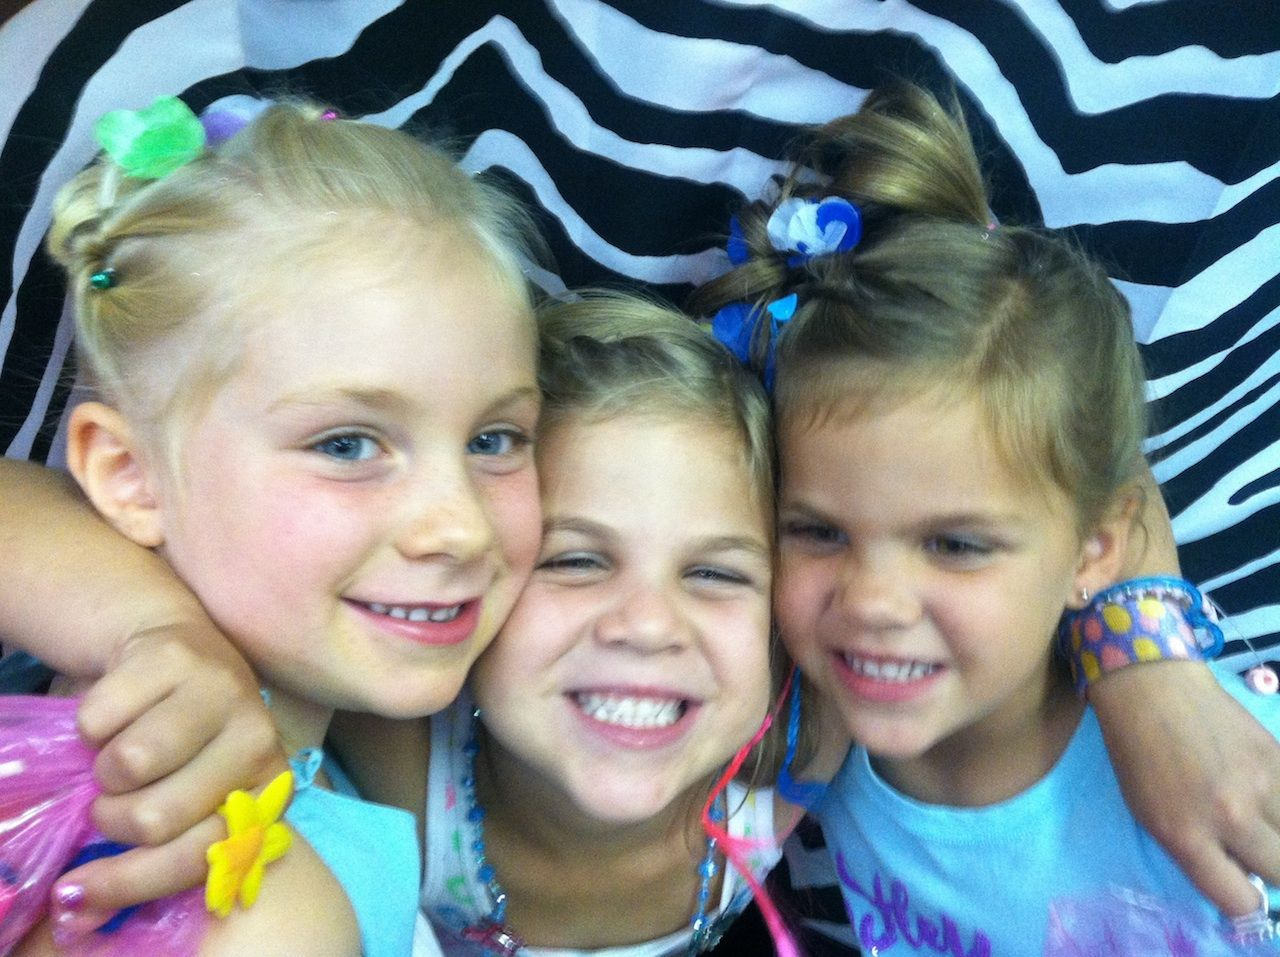 Where Can I Get My Daughters Ears Pierced That Is Safe And Sanitary Licensed Professional Experienced With 33 Years Kids Salon Kids Hairstyles Spoiled Kids